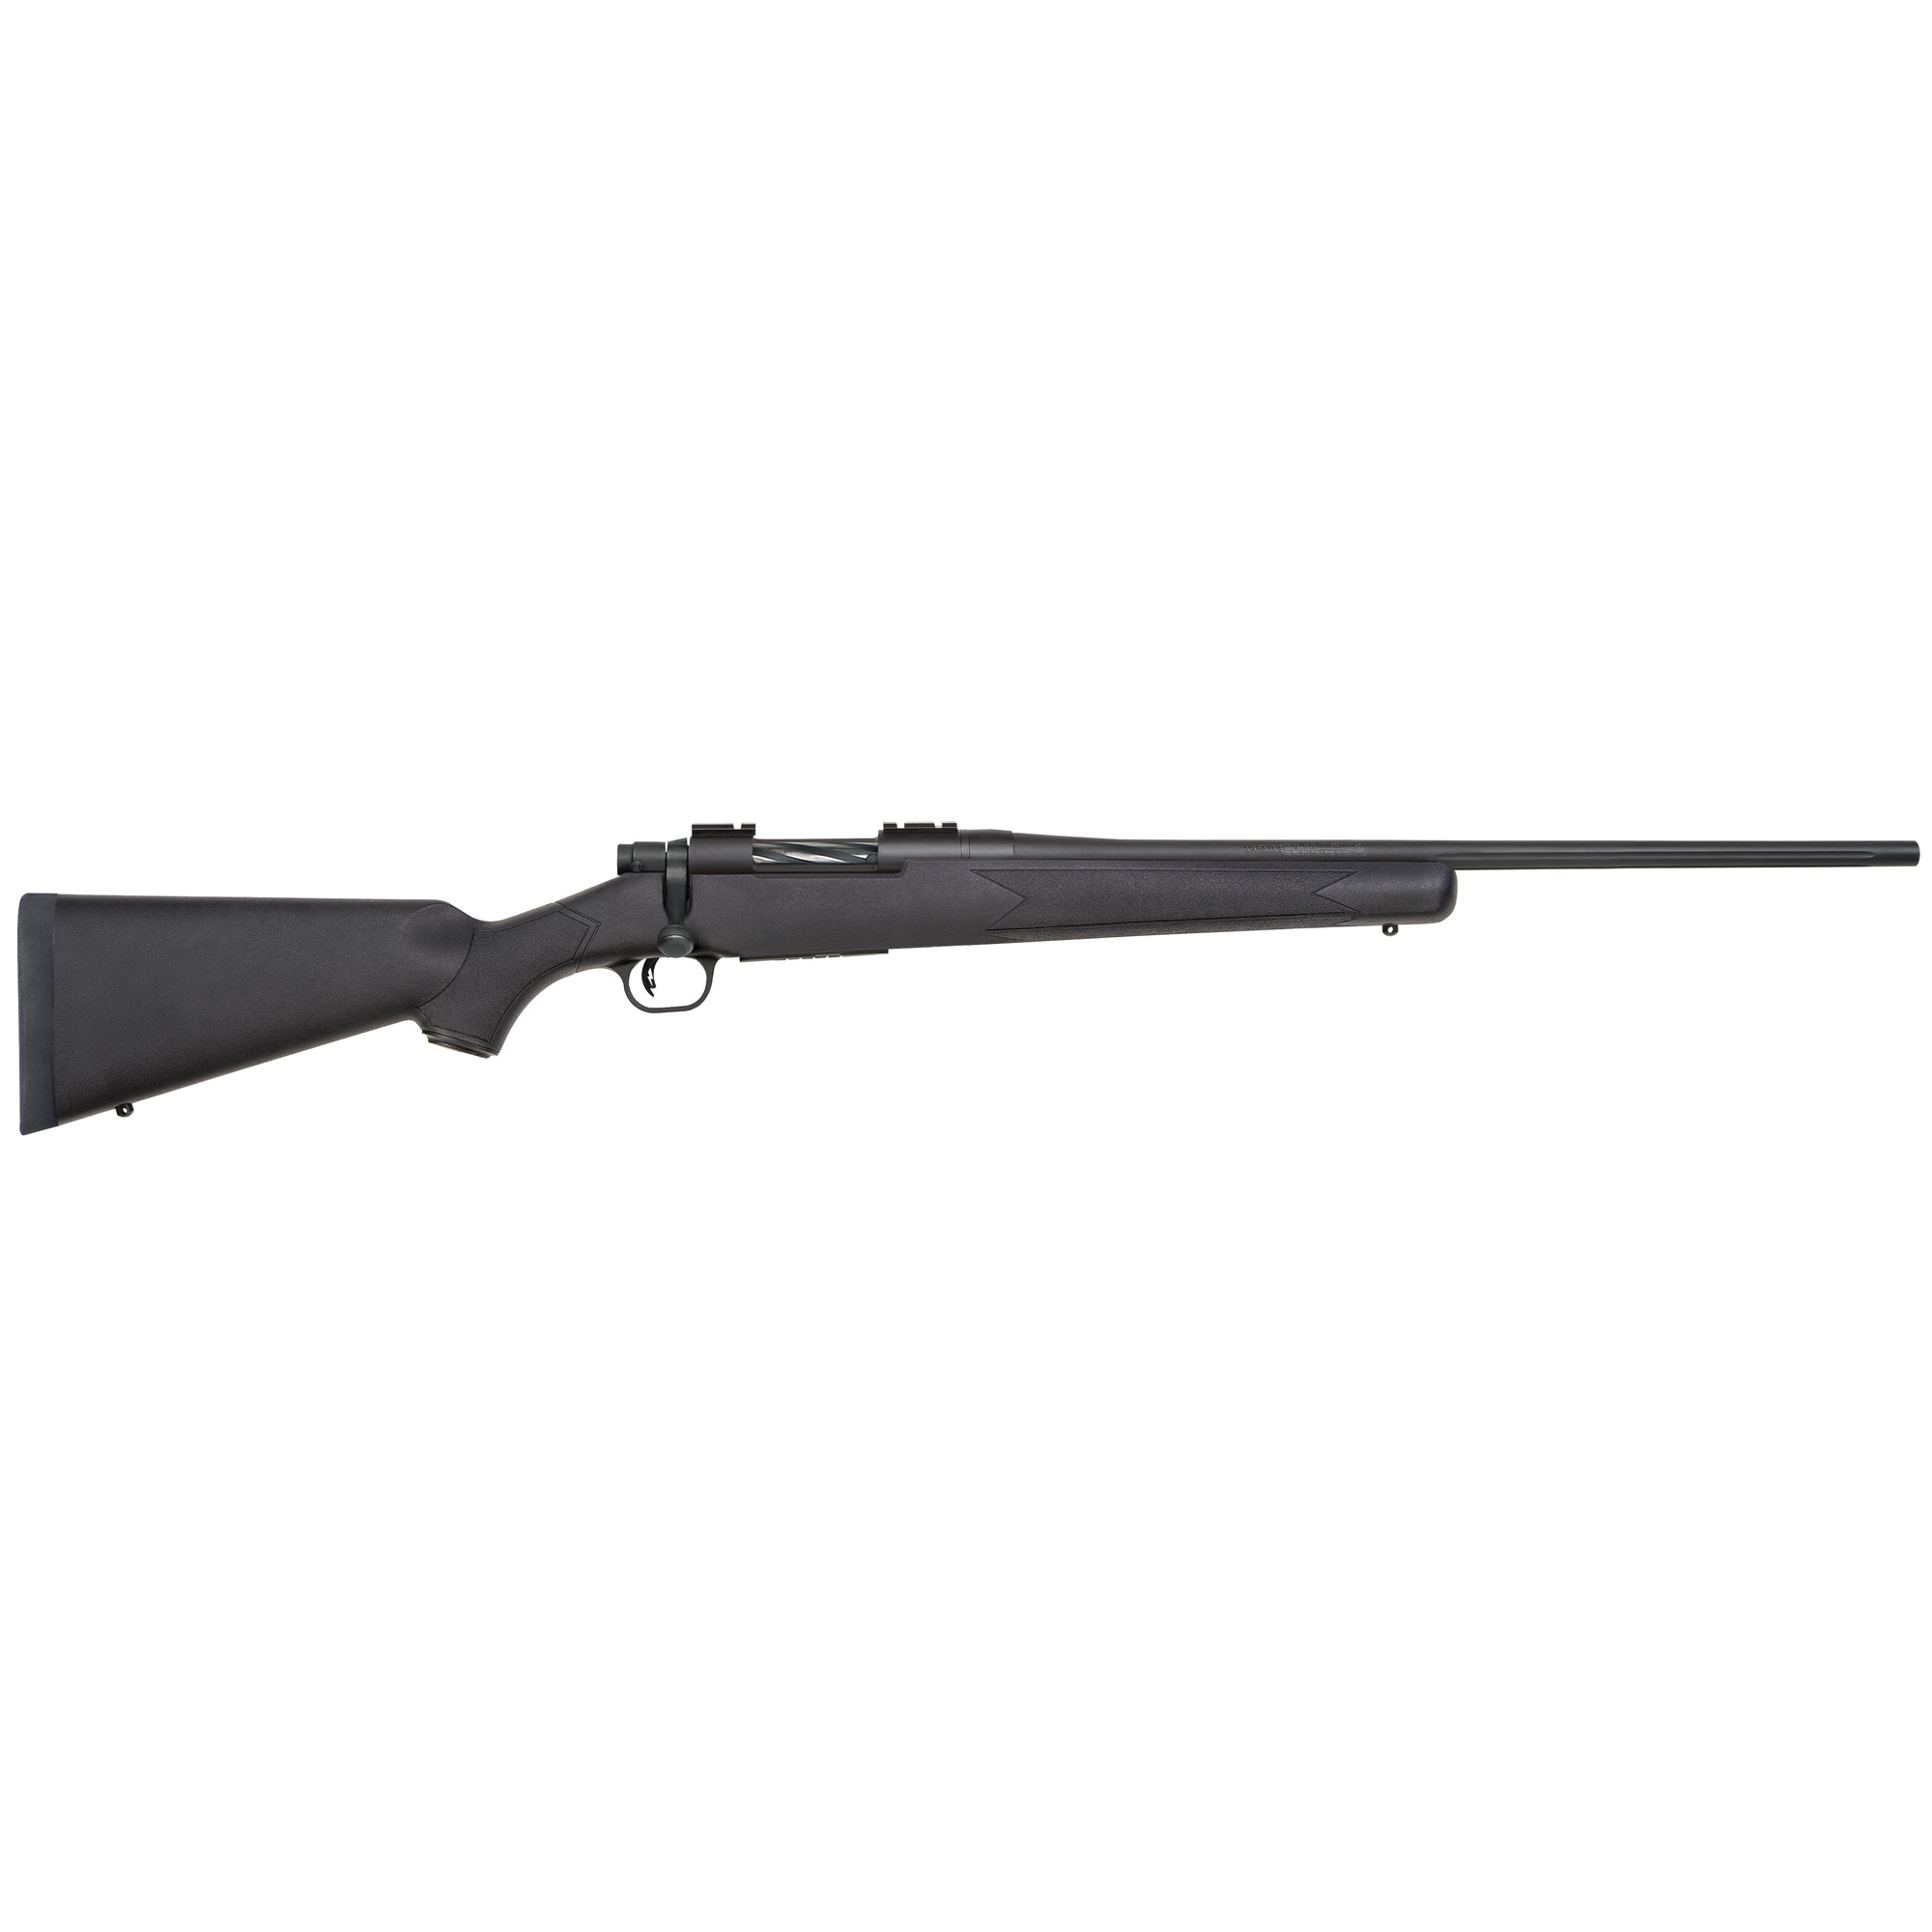 """Available in Walnut"""" Laminate"""" or Synthetic"""" the classic styled Patriot looks great on the gun rack and feels great when shouldered. The Patriot's button-rifled fluted barrels are free-floated and have a recessed crown for maximum accuracy. At 22"""" in length"""" the barrels are long enough to achieve full-velocity from every caliber"""" yet short enough for quick handling in the densest woods. The Patriot's attractive spiral fluted bolts feature an ergonomic bolt angle and knurled bolt handle offering plenty of grip for quick follow-up shots and enhanced shooter comfort. Its box-magazine-fed action makes loading and unloading a snap."""